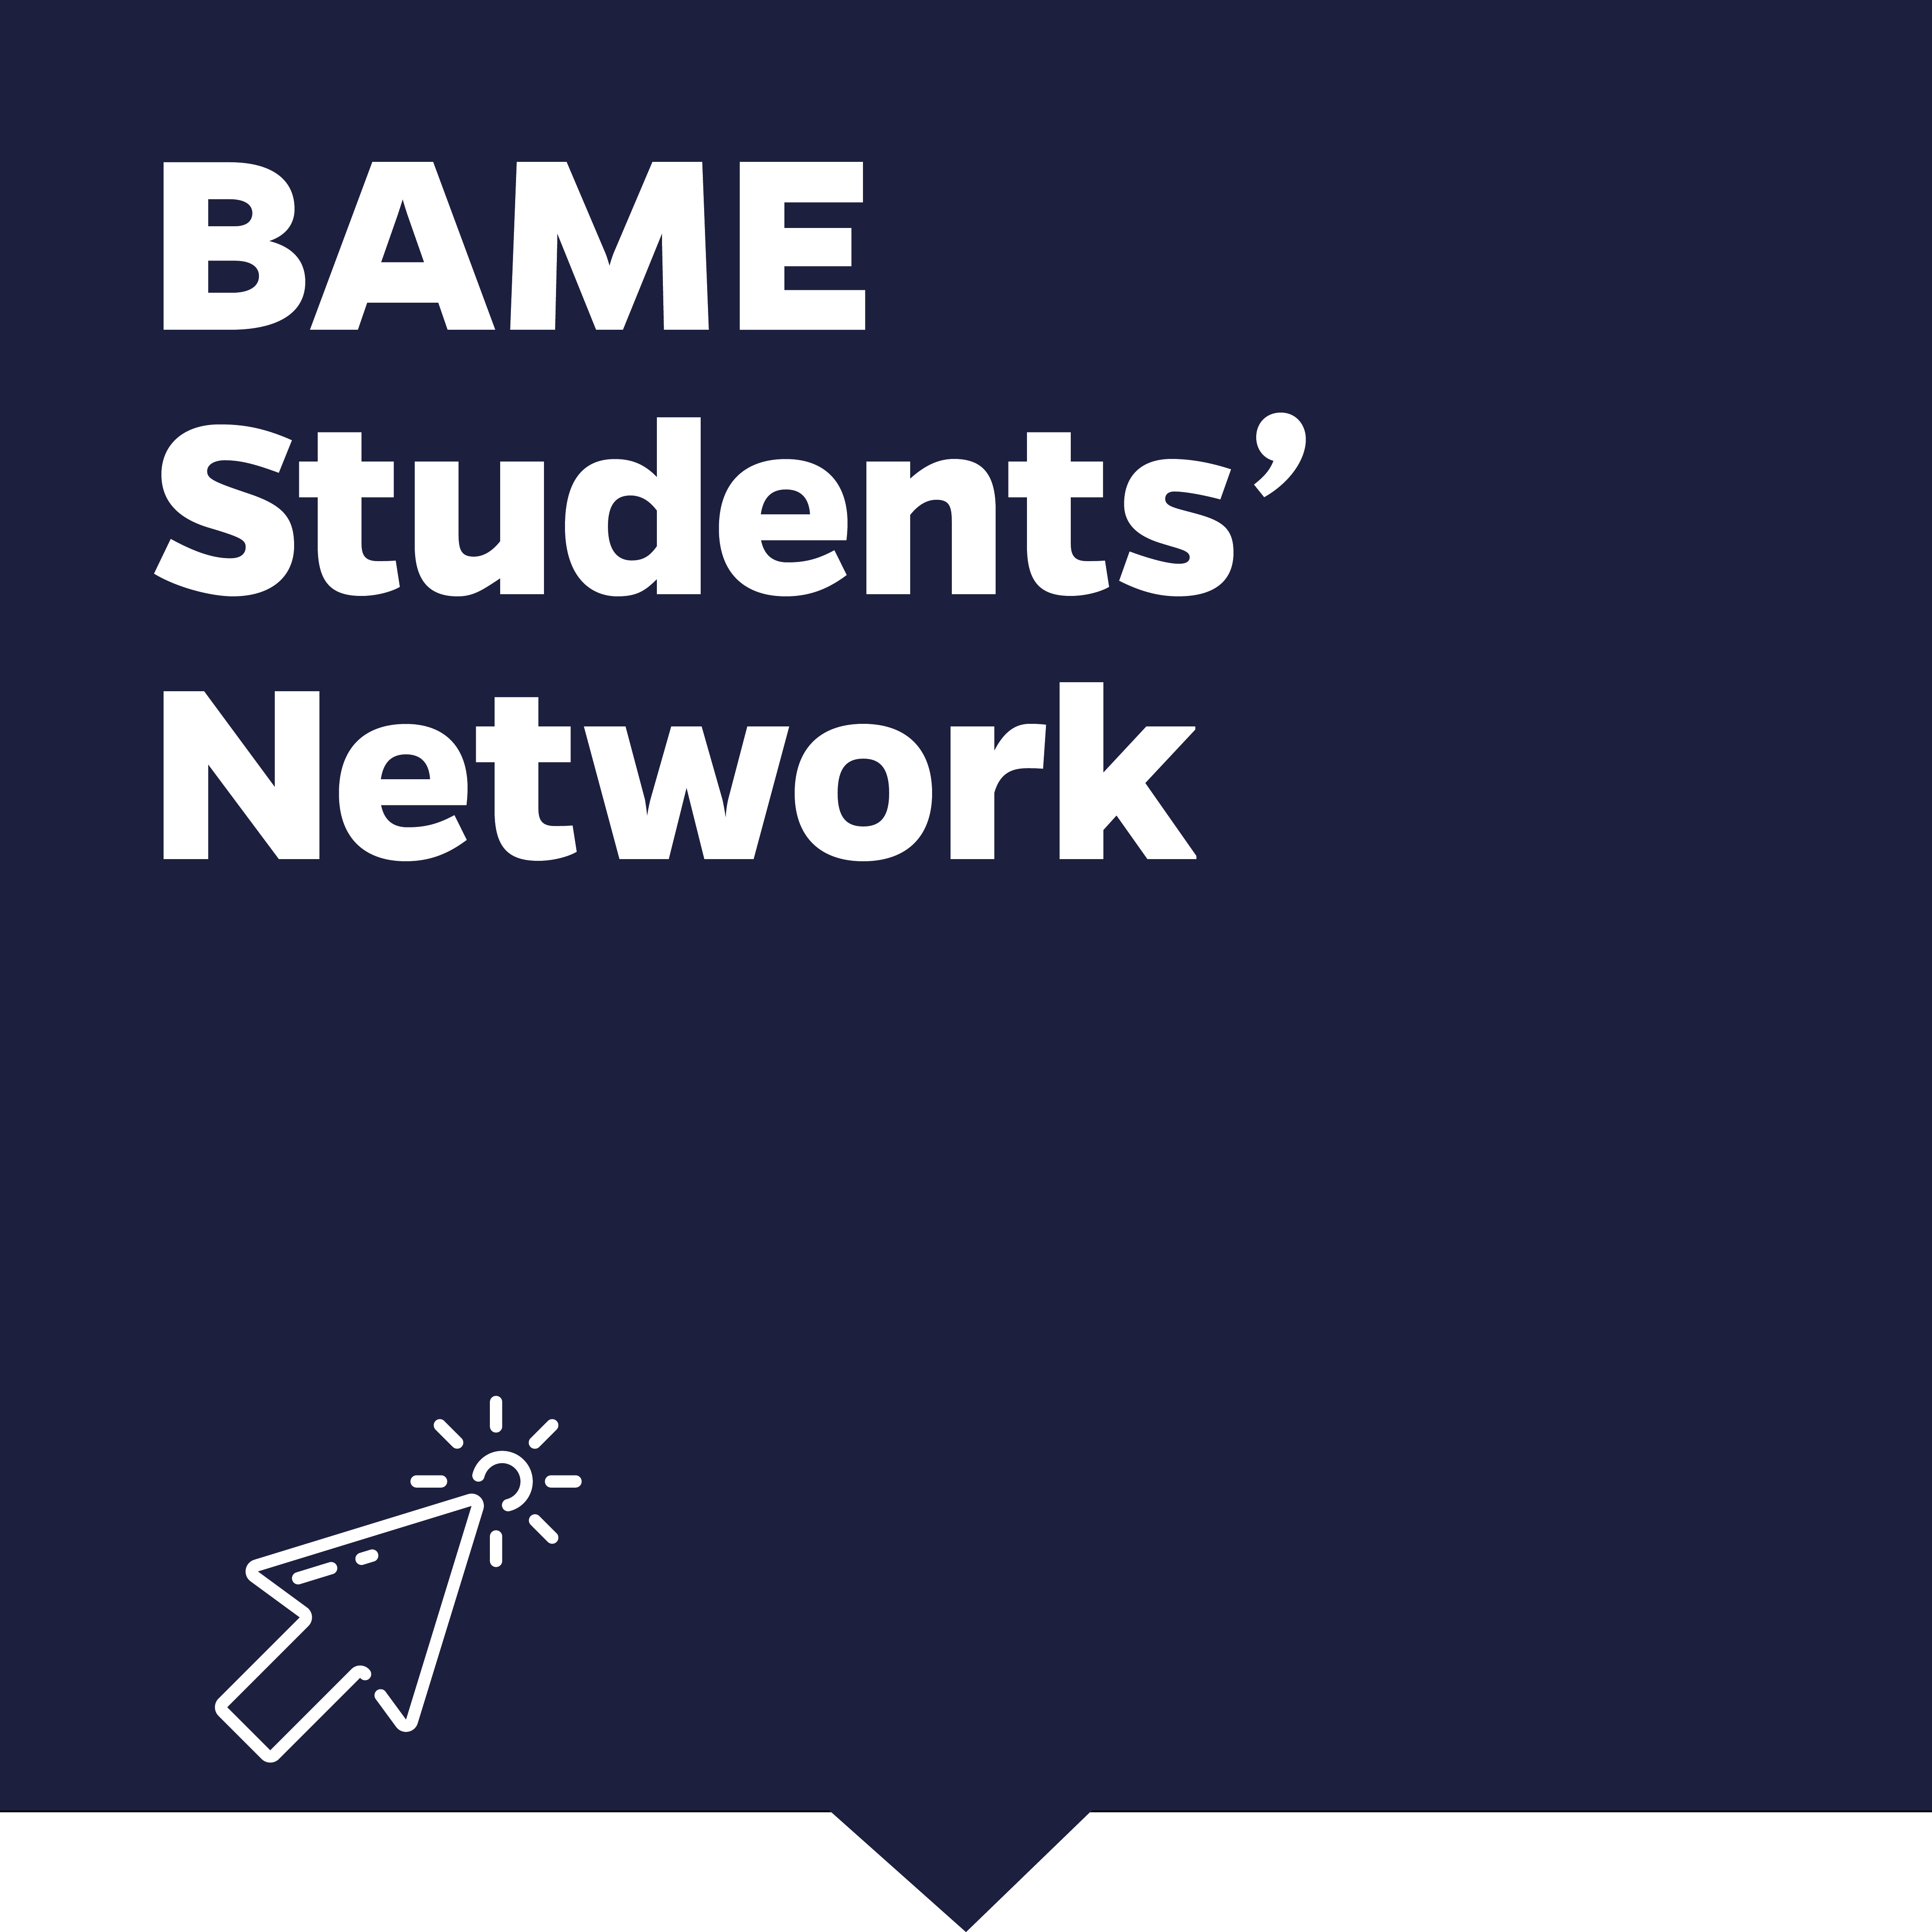 BAME Students' Network